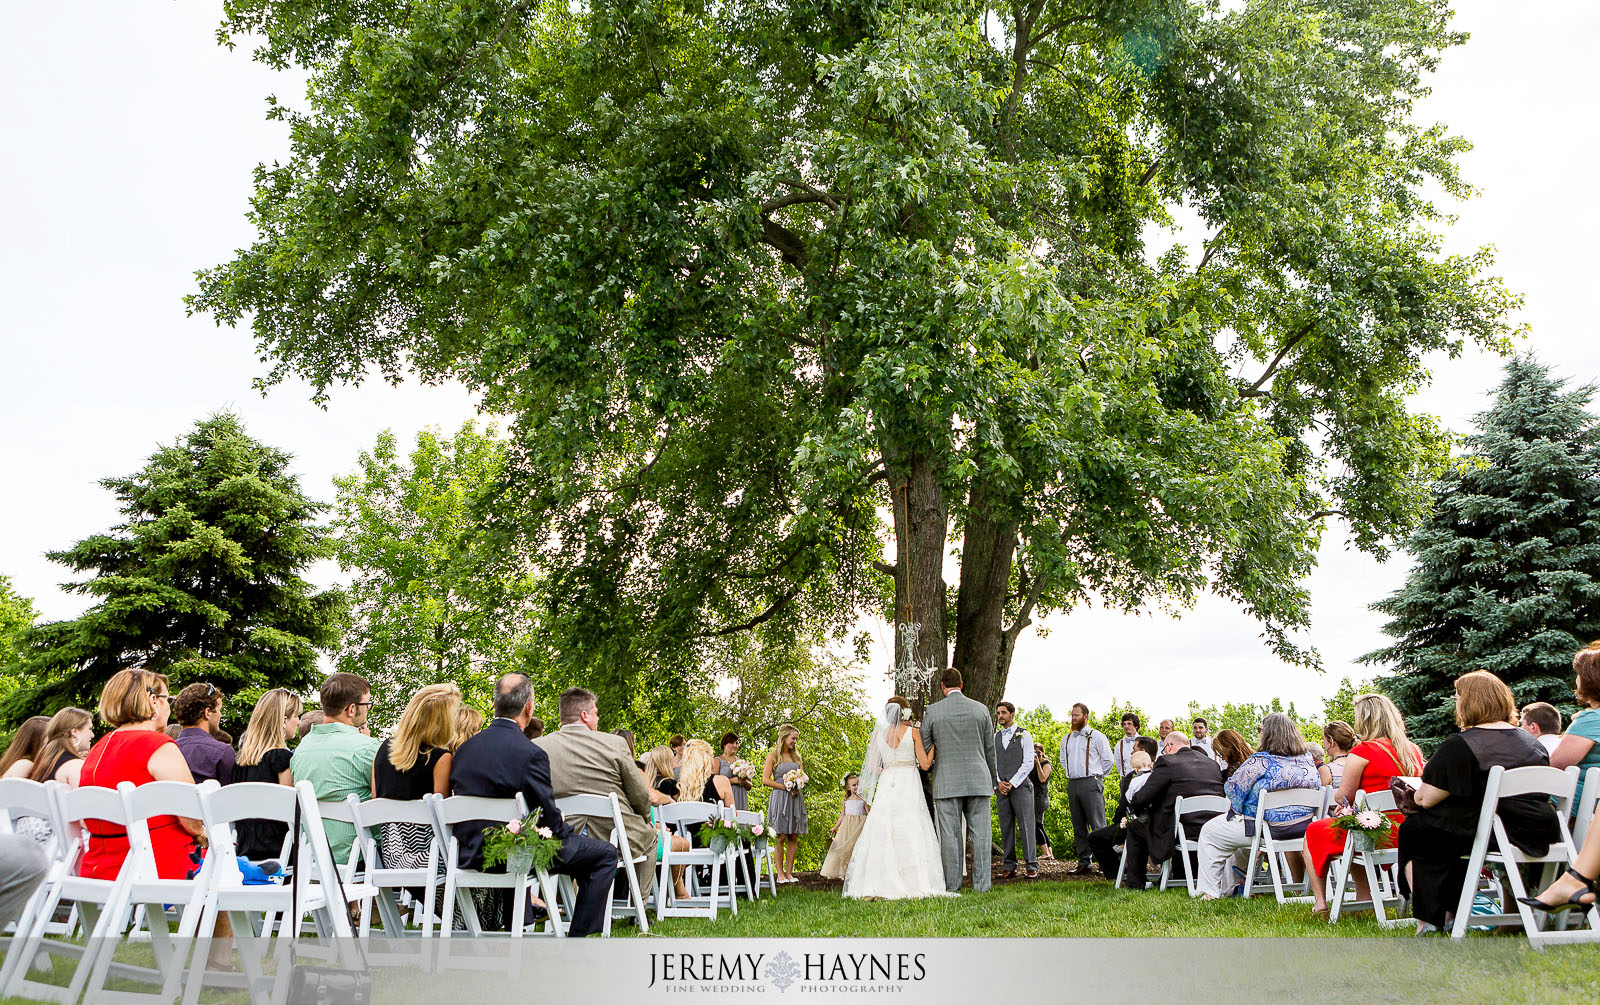 Randy + Lindsay  Mustard Seed Gardens Noblesville, IN Wedding Pictures 22.jpg